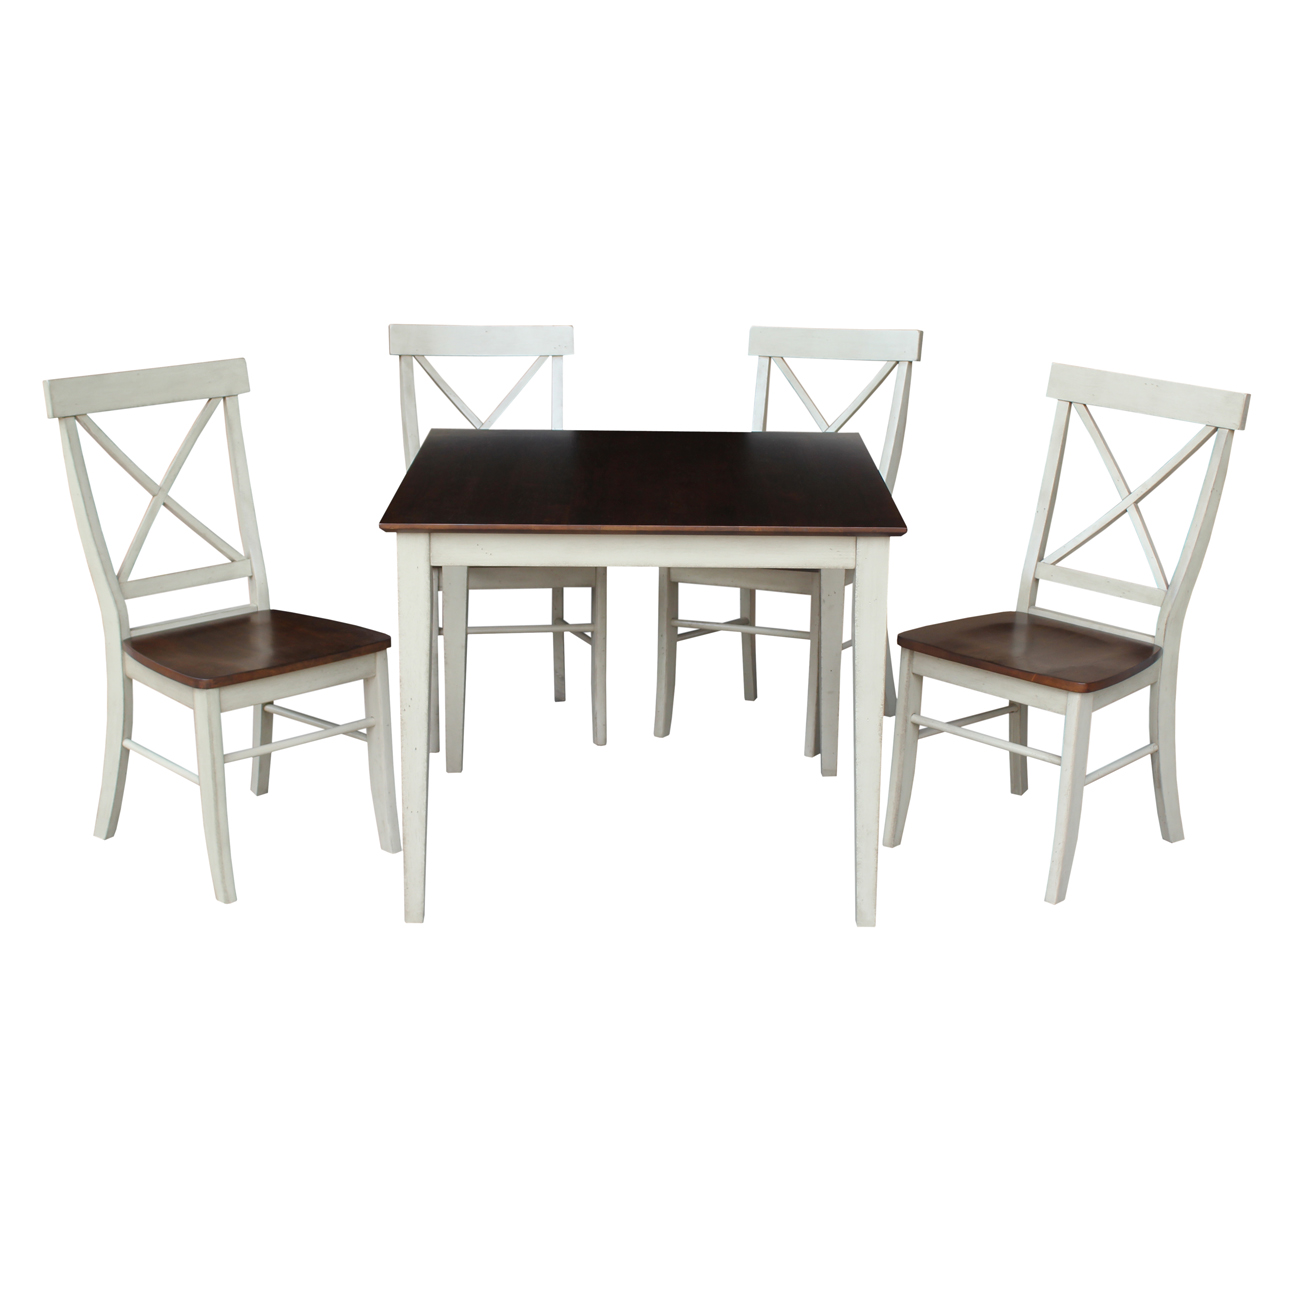 """36"""" Square Dining Table with 4 X-back Chairs in Antiqued Almond/Espresso - 5 Piece Set"""